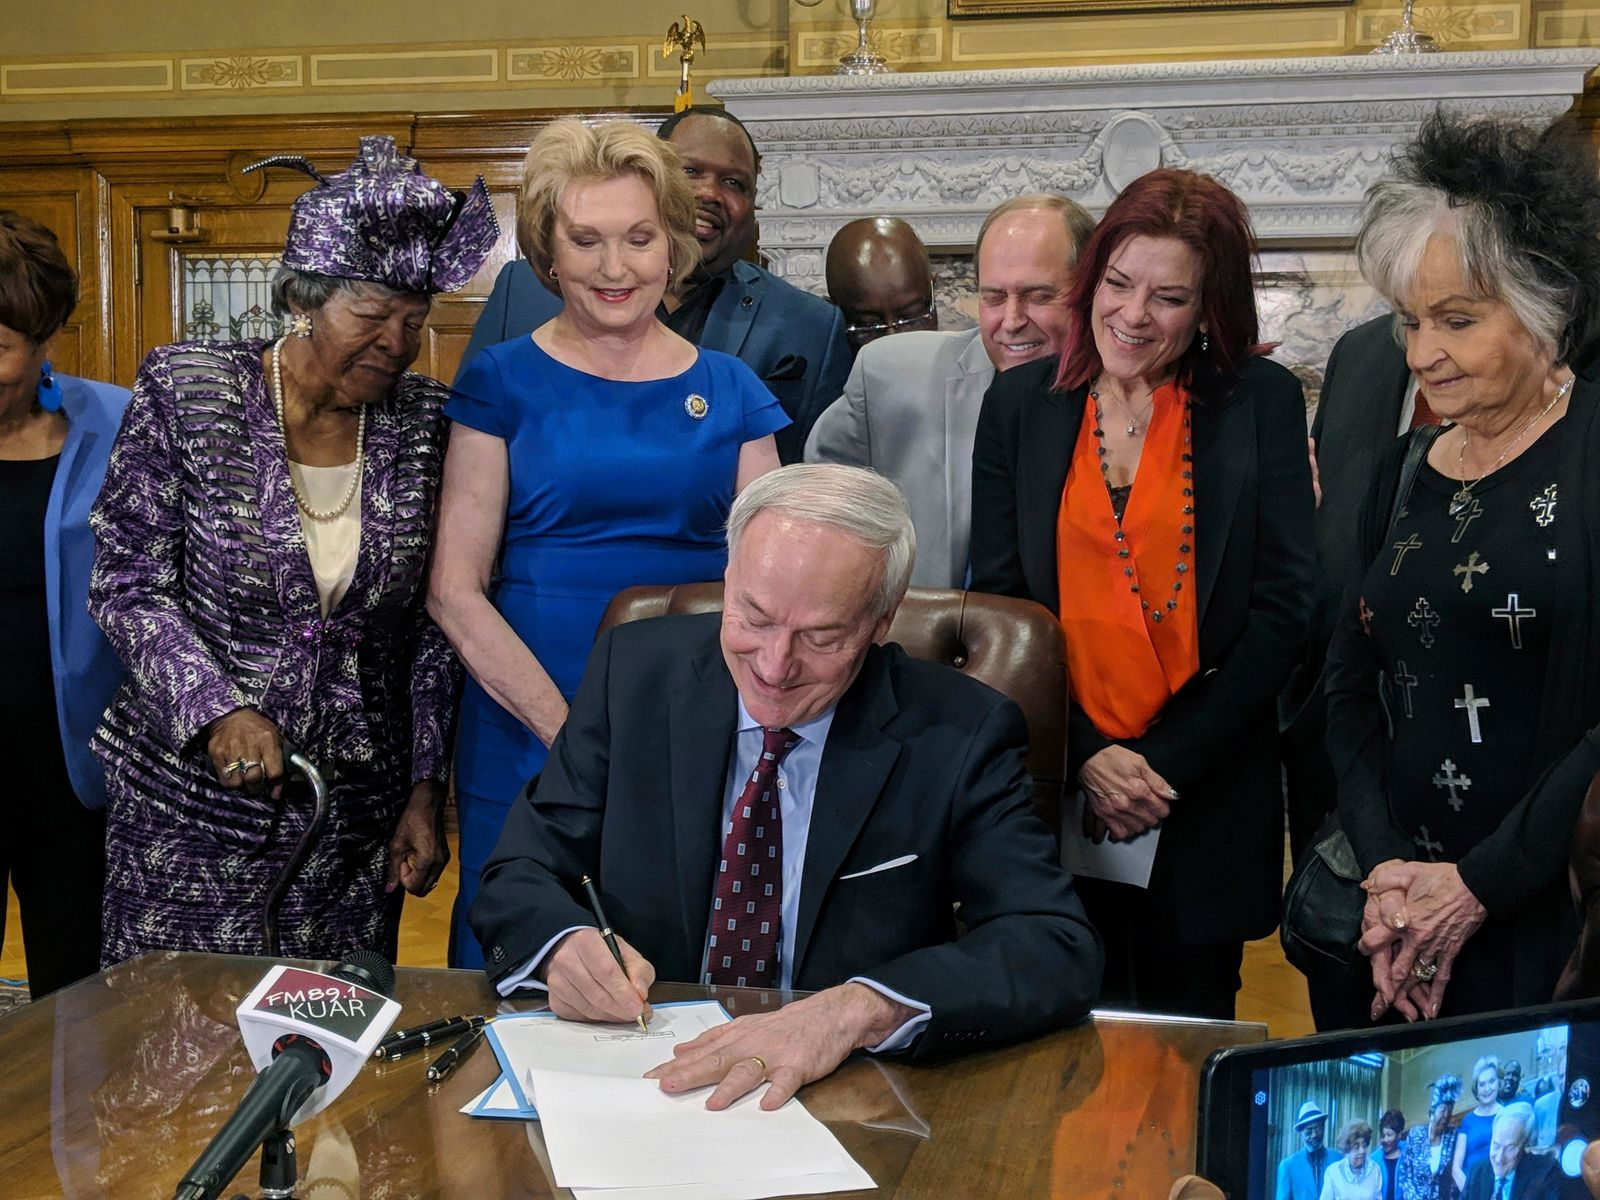 Arkansas Gov. Asa Hutchinson signs a bill into law that replaces two statues in a U.S. Capitol display with statues of civil rights leader Daisy Bates and country musician Johnny Cash, Thursday, April 11, 2019, in Little Rock, Ark. The governor was joined by friends and family of Bates and Cash. They will replace statues of attorney Uriah Milton Rose and former Gov. and Sen. James Paul Clarke. (AP Photo/Hannah Grabenstein)